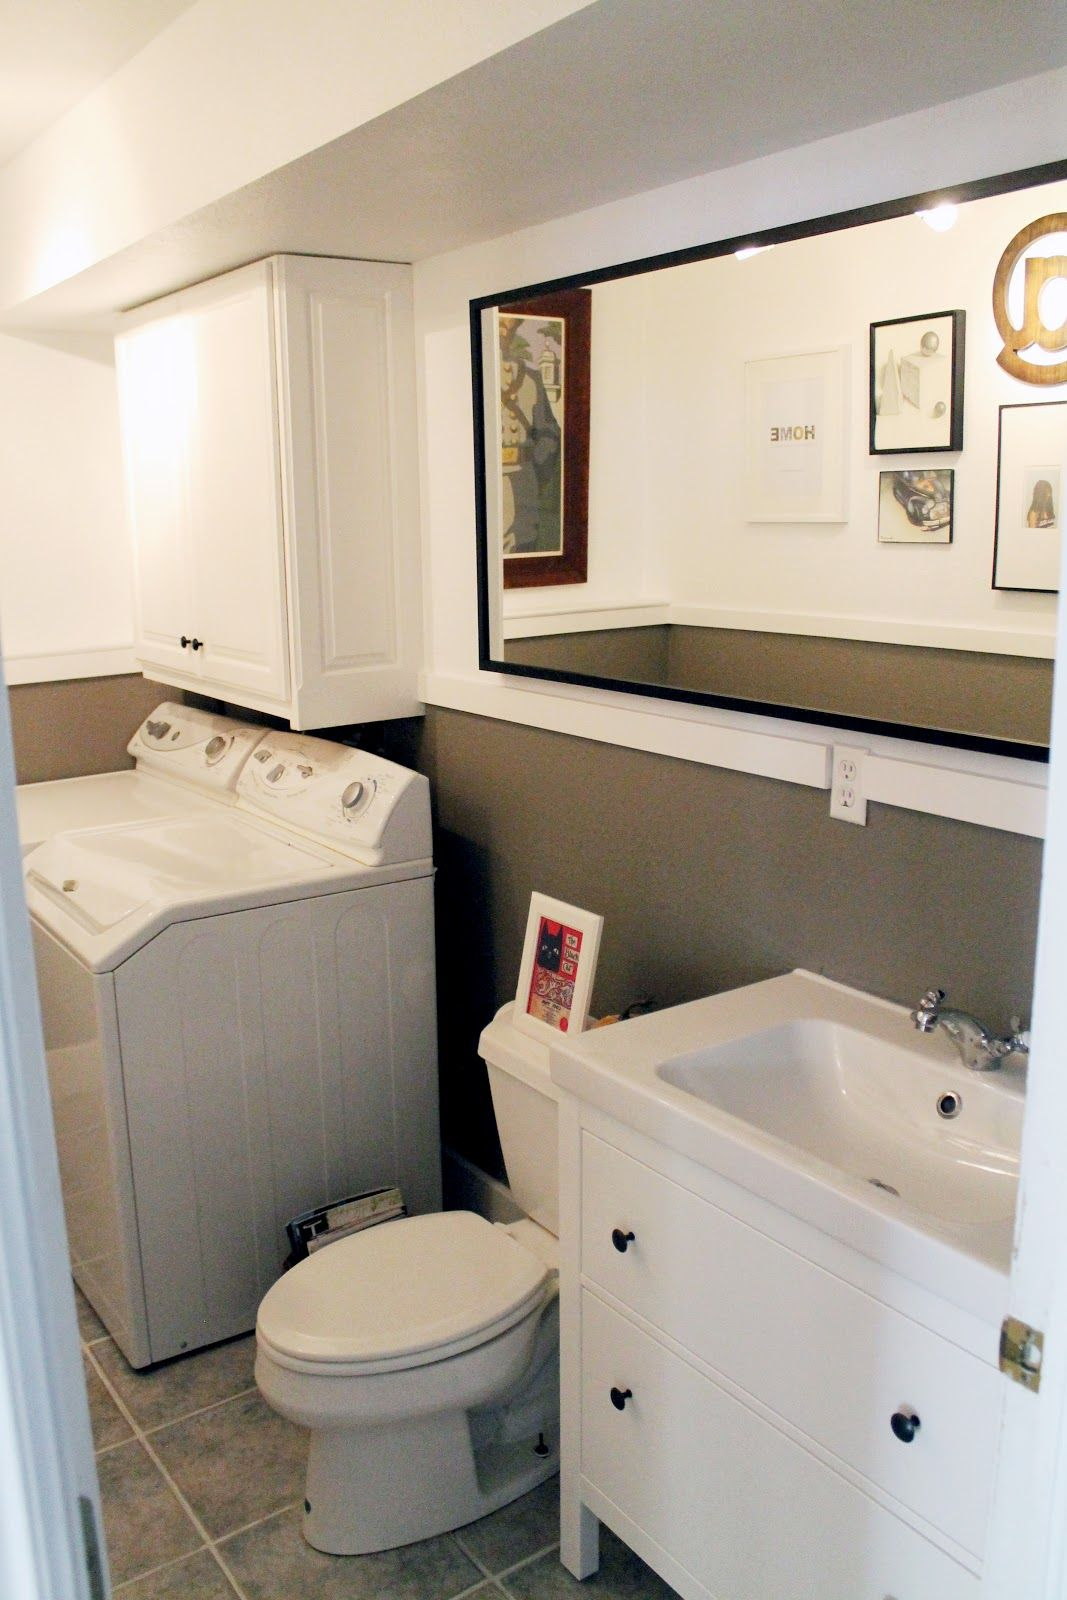 Bathroom Divine Laundry Roomhalf Bath Before And Afters Chris Loves Julia Room Designs Combined Floor Plans Combination Small With Half Ideas